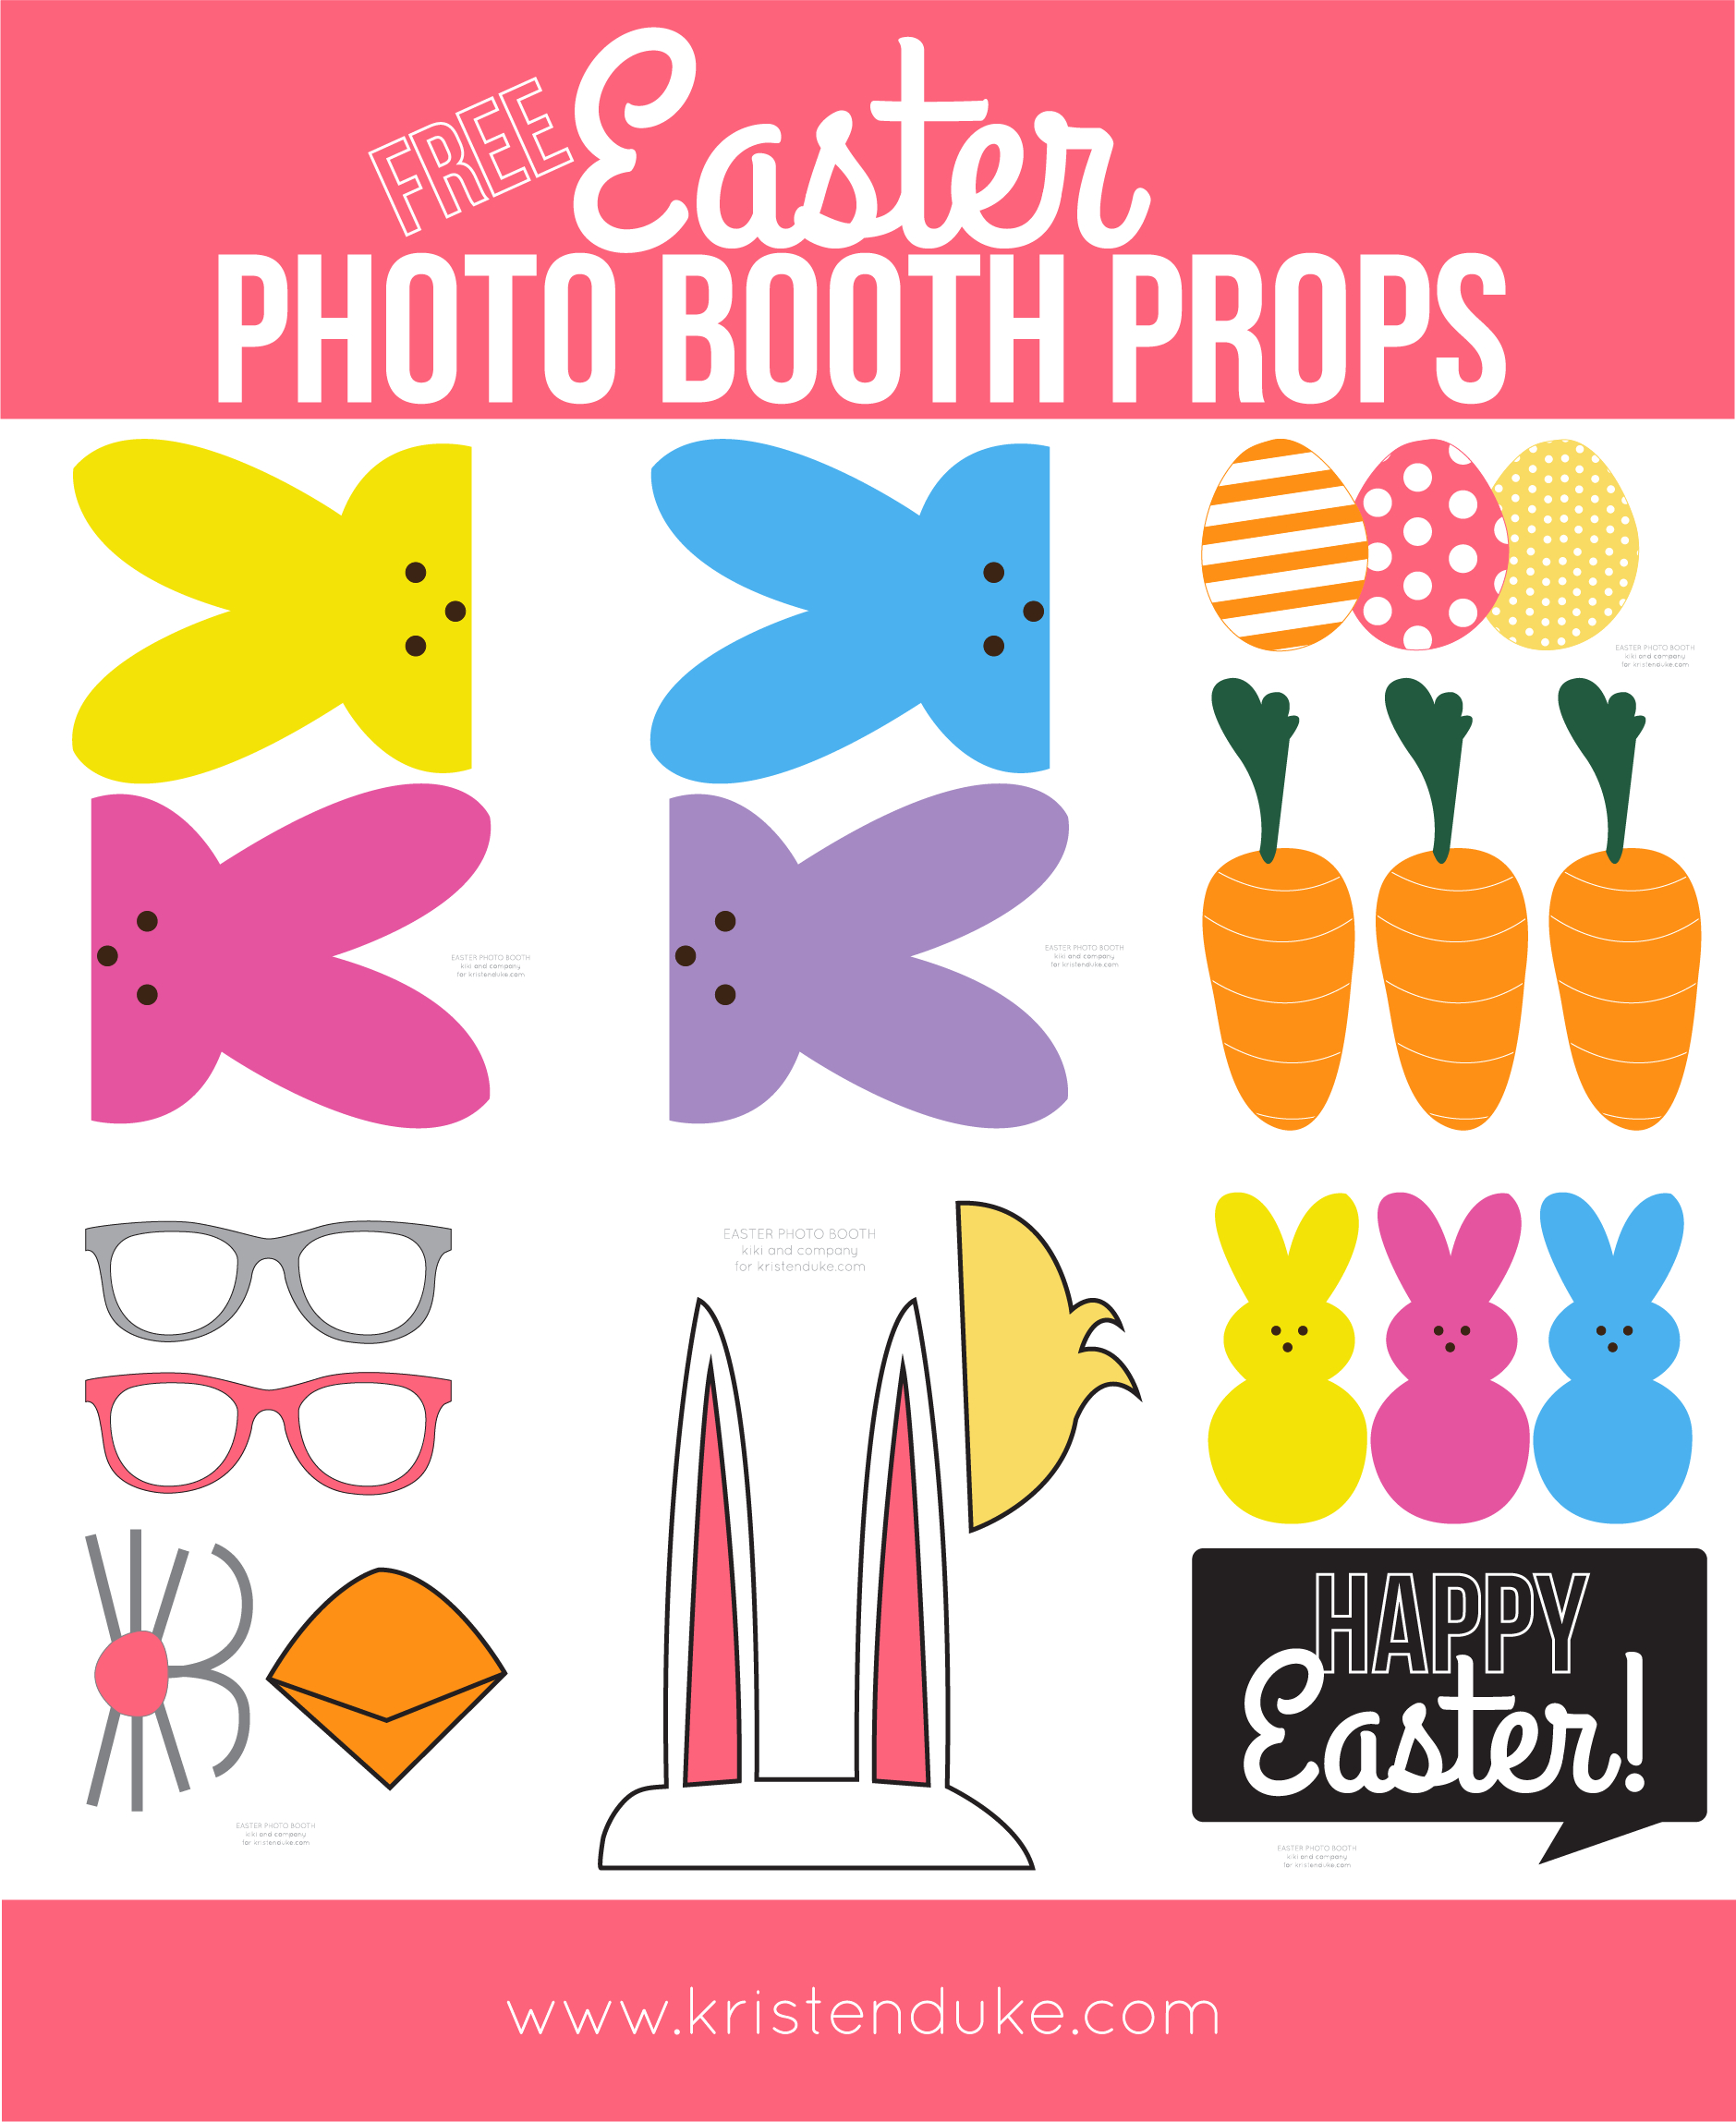 Easter Photo Booth Props From Capturing Joy With Kristen Duke - Free Photo Booth Props Printable Pdf